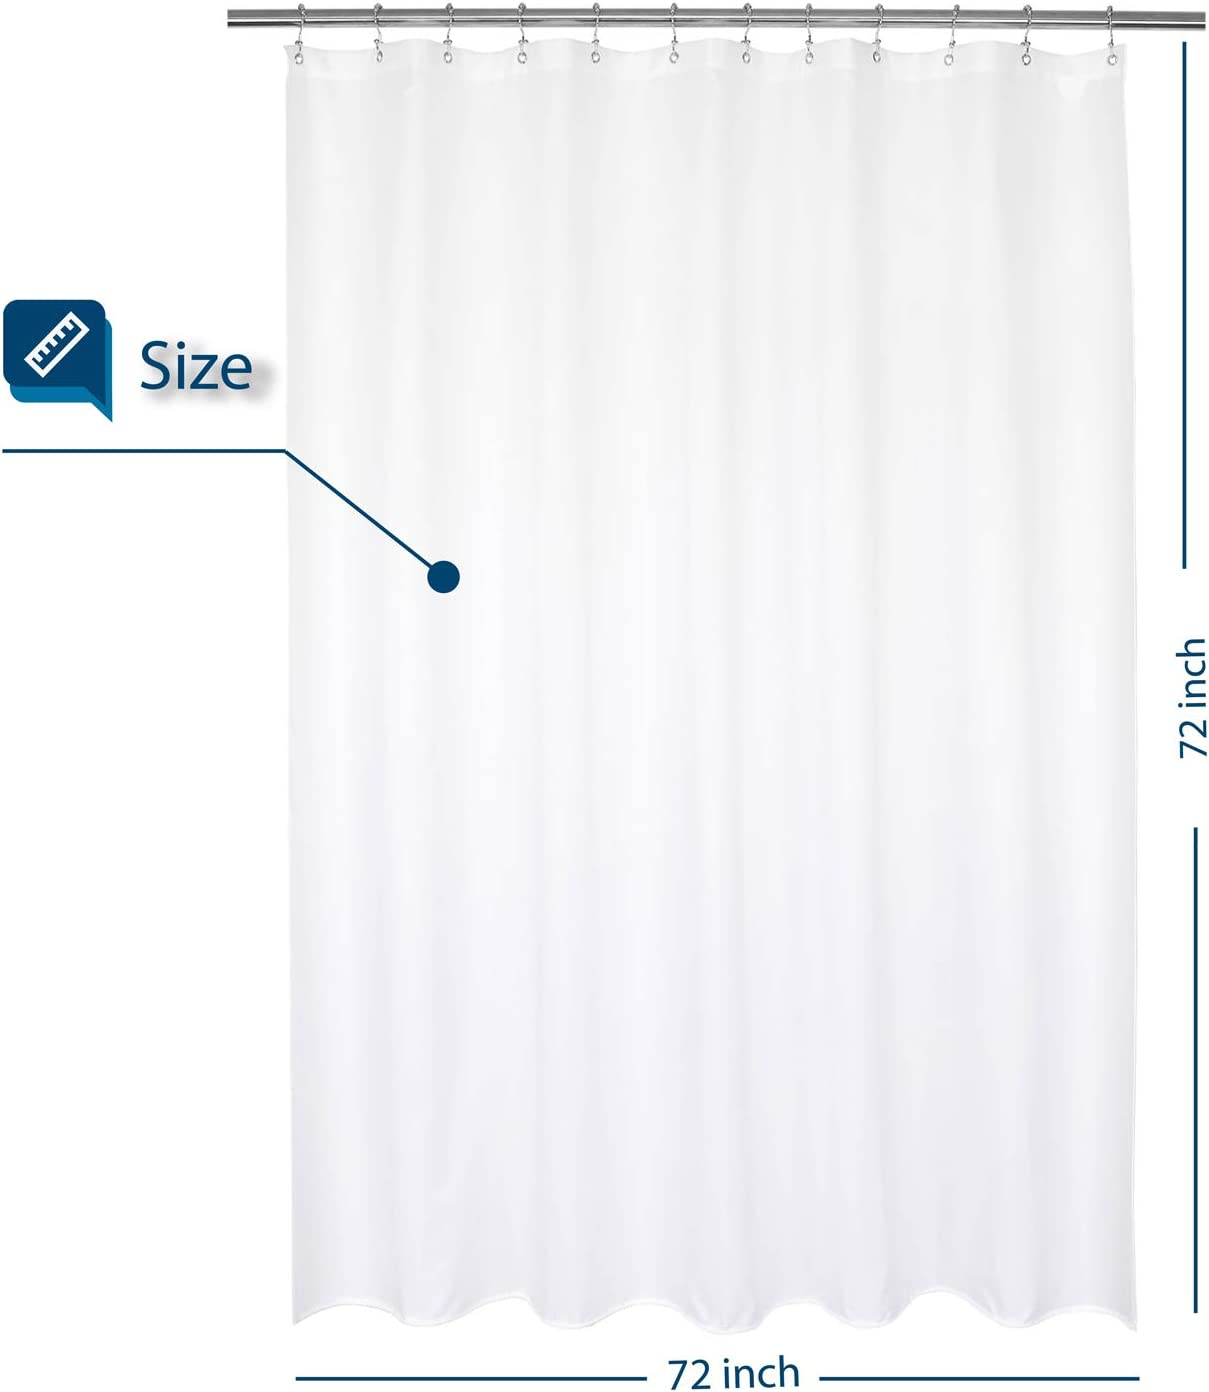 Barossa Design Waterproof Fabric Shower Curtain or Liner Hotel Quality, Machine Washable, White Shower Curtain Liner for Bath Tub, 72x72 Inches: Home & Kitchen